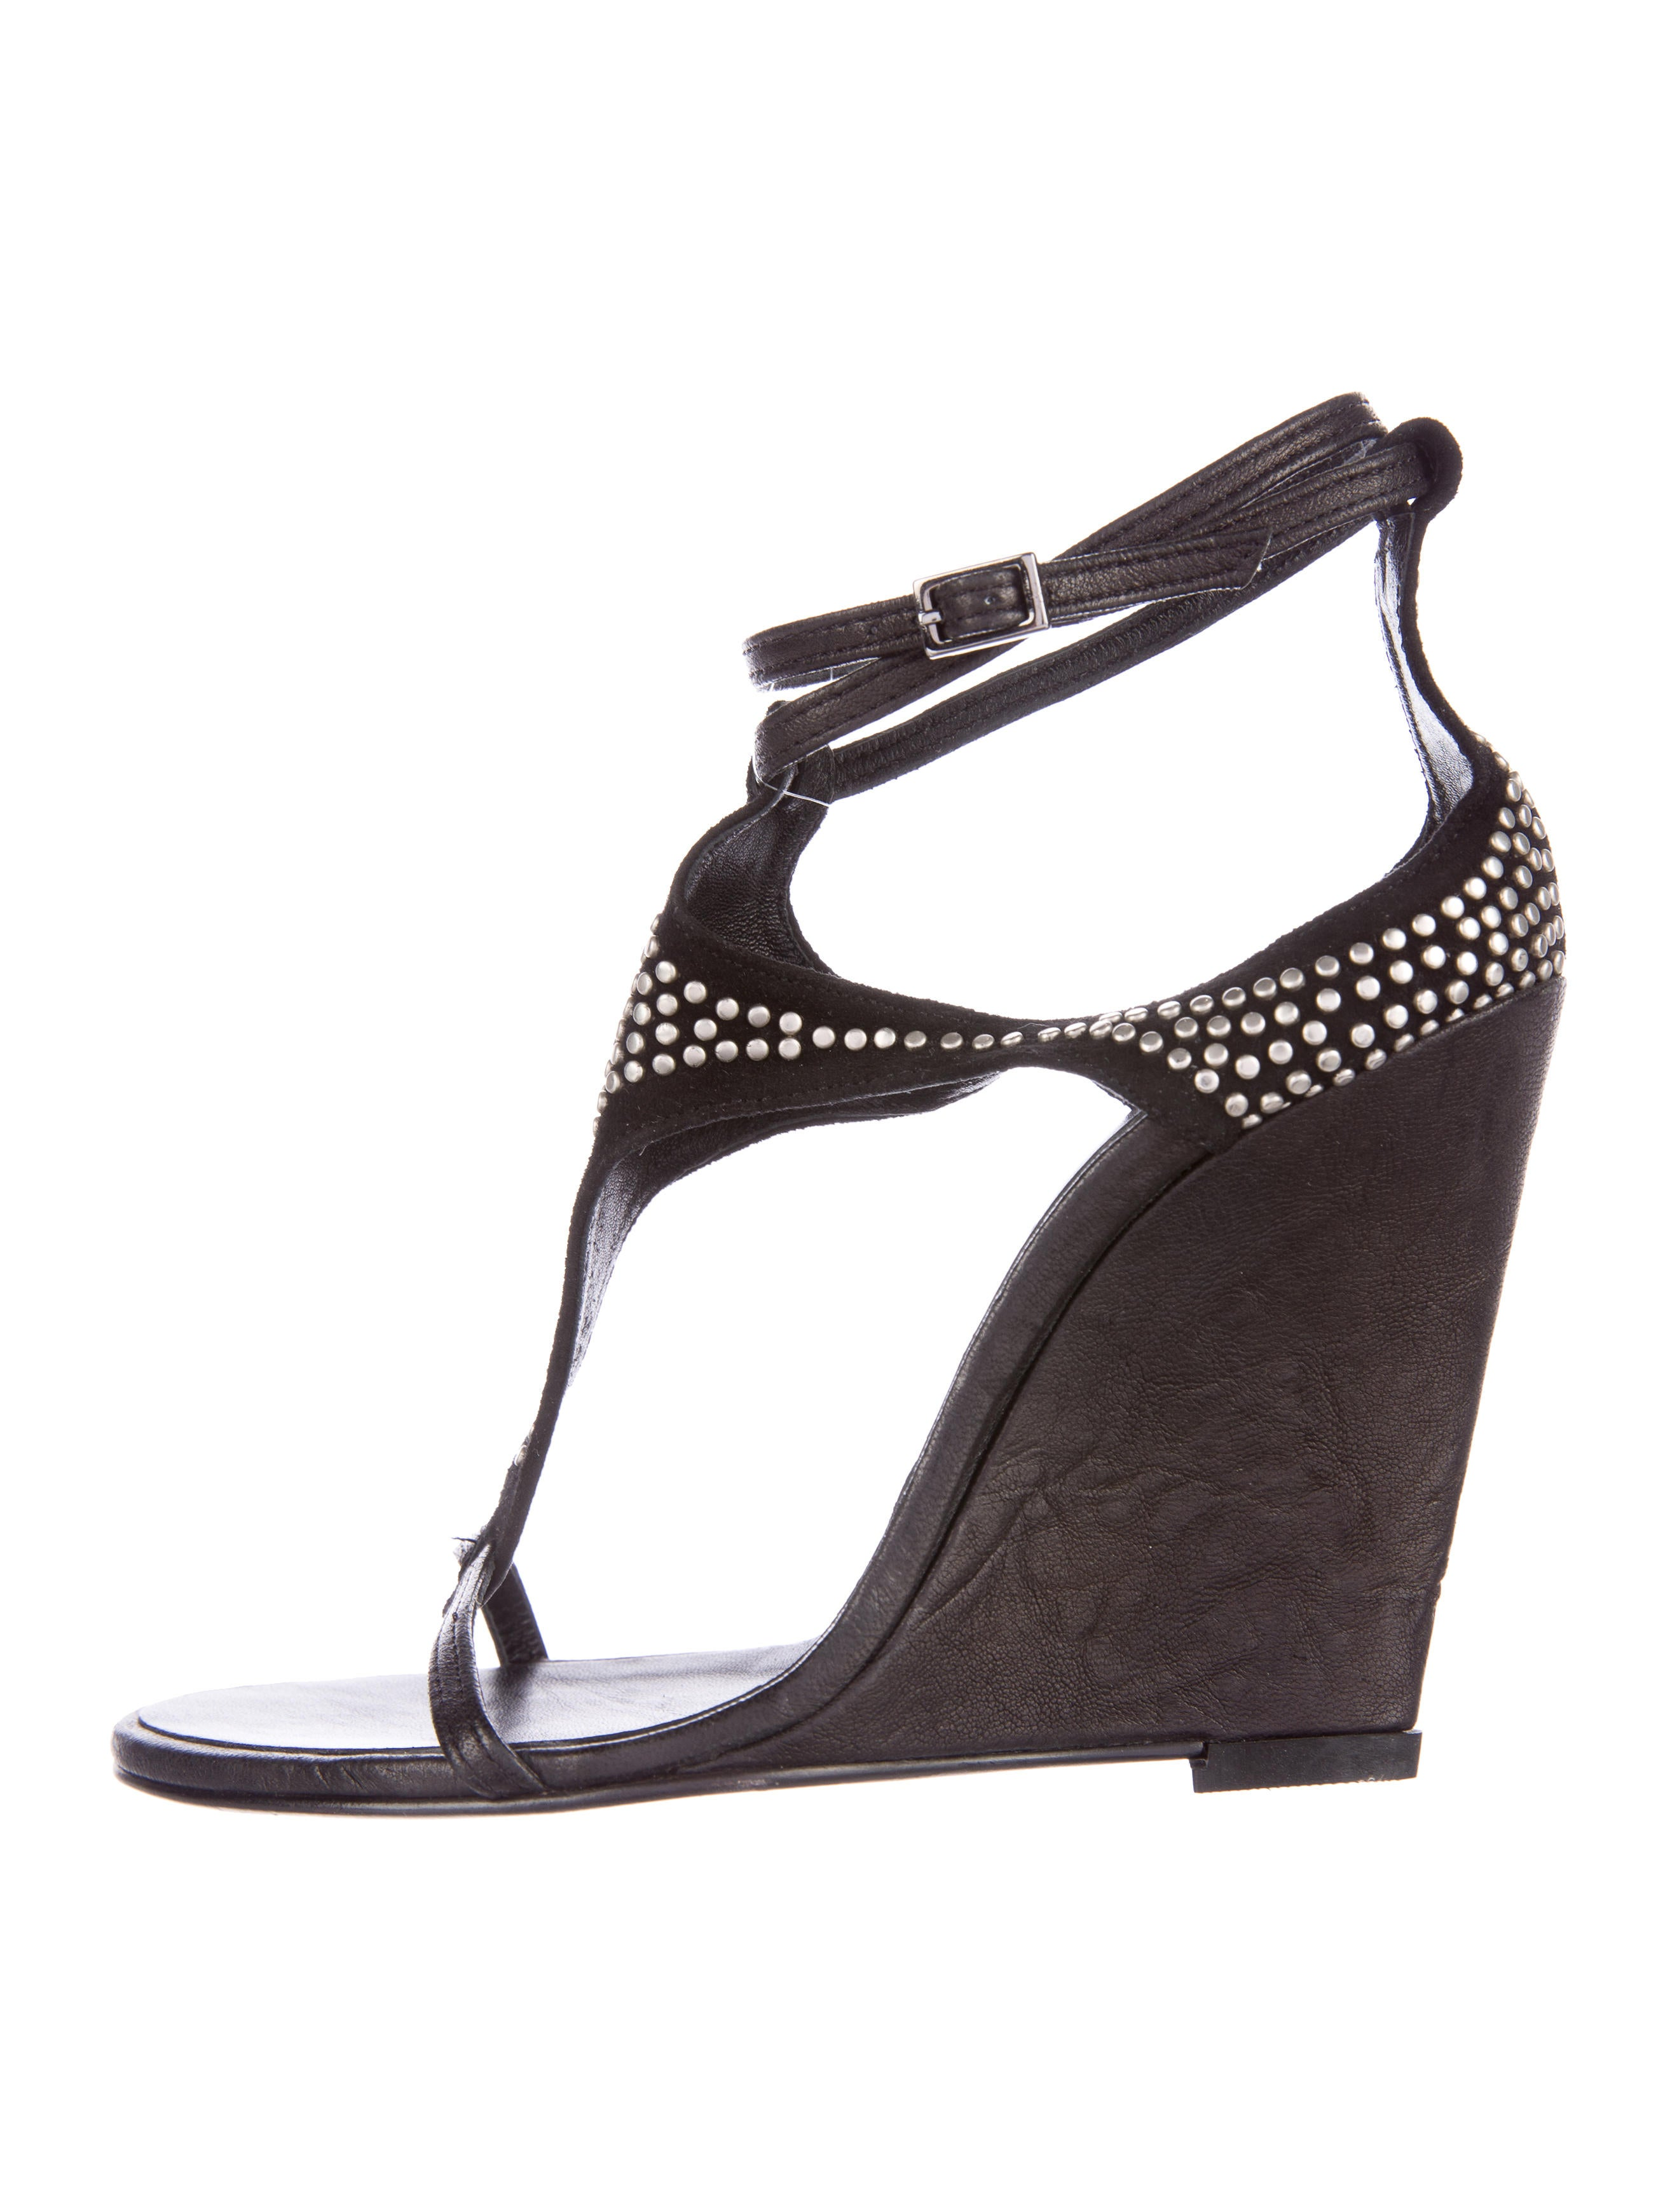 Thomas Wylde Studded Wedge Sandals cheap low shipping fee clearance in China free shipping footlocker finishline buy cheap 100% original buy cheap top quality wo49HiiJH